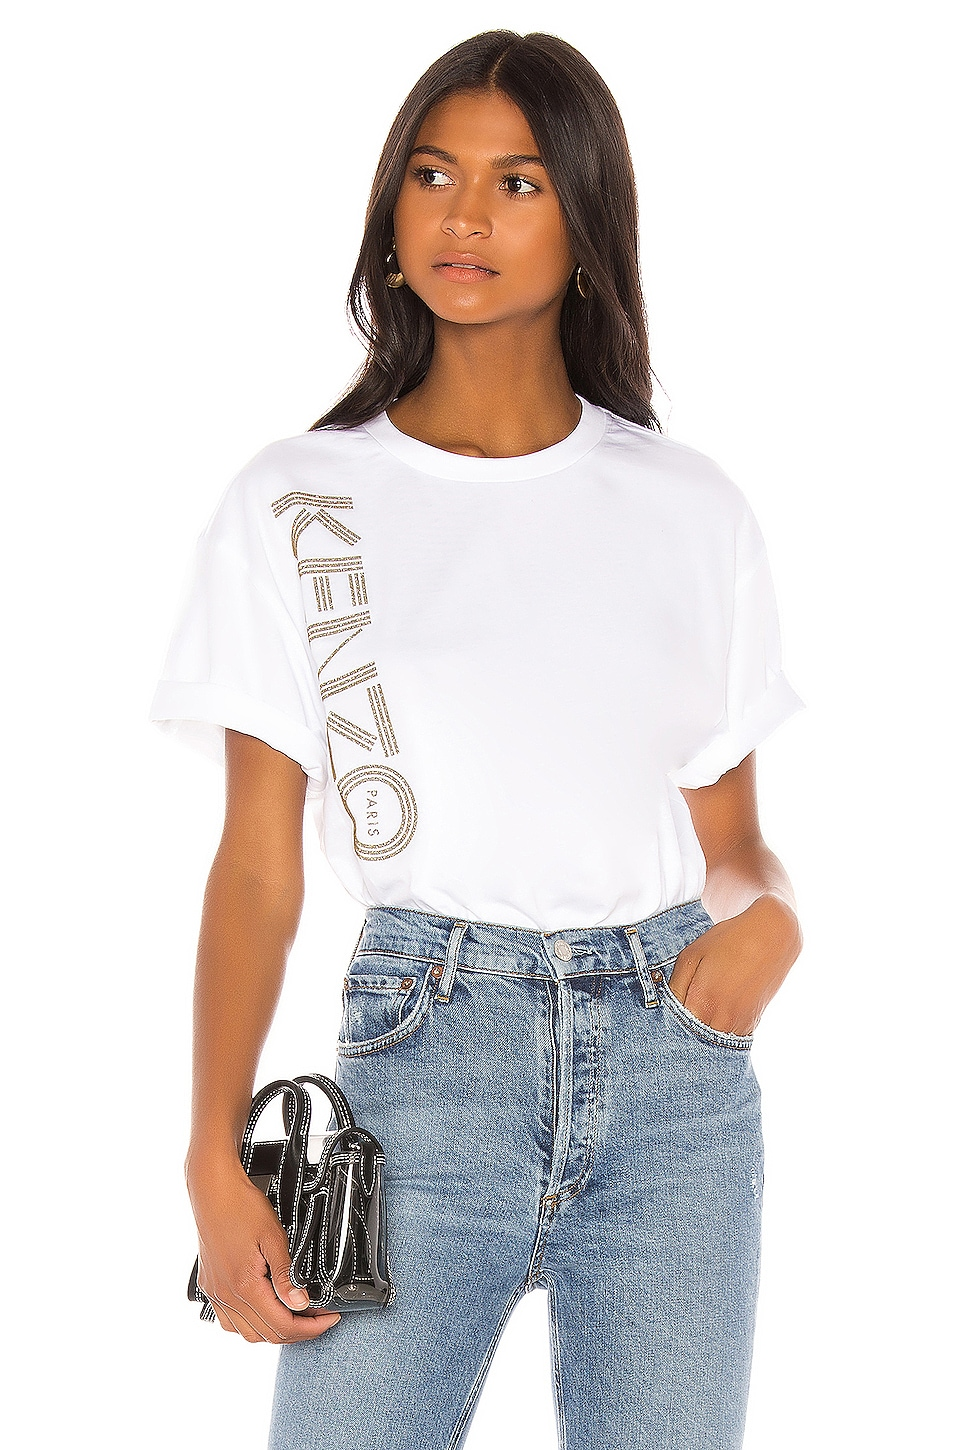 Kenzo Sport Single Jersey Tee in White